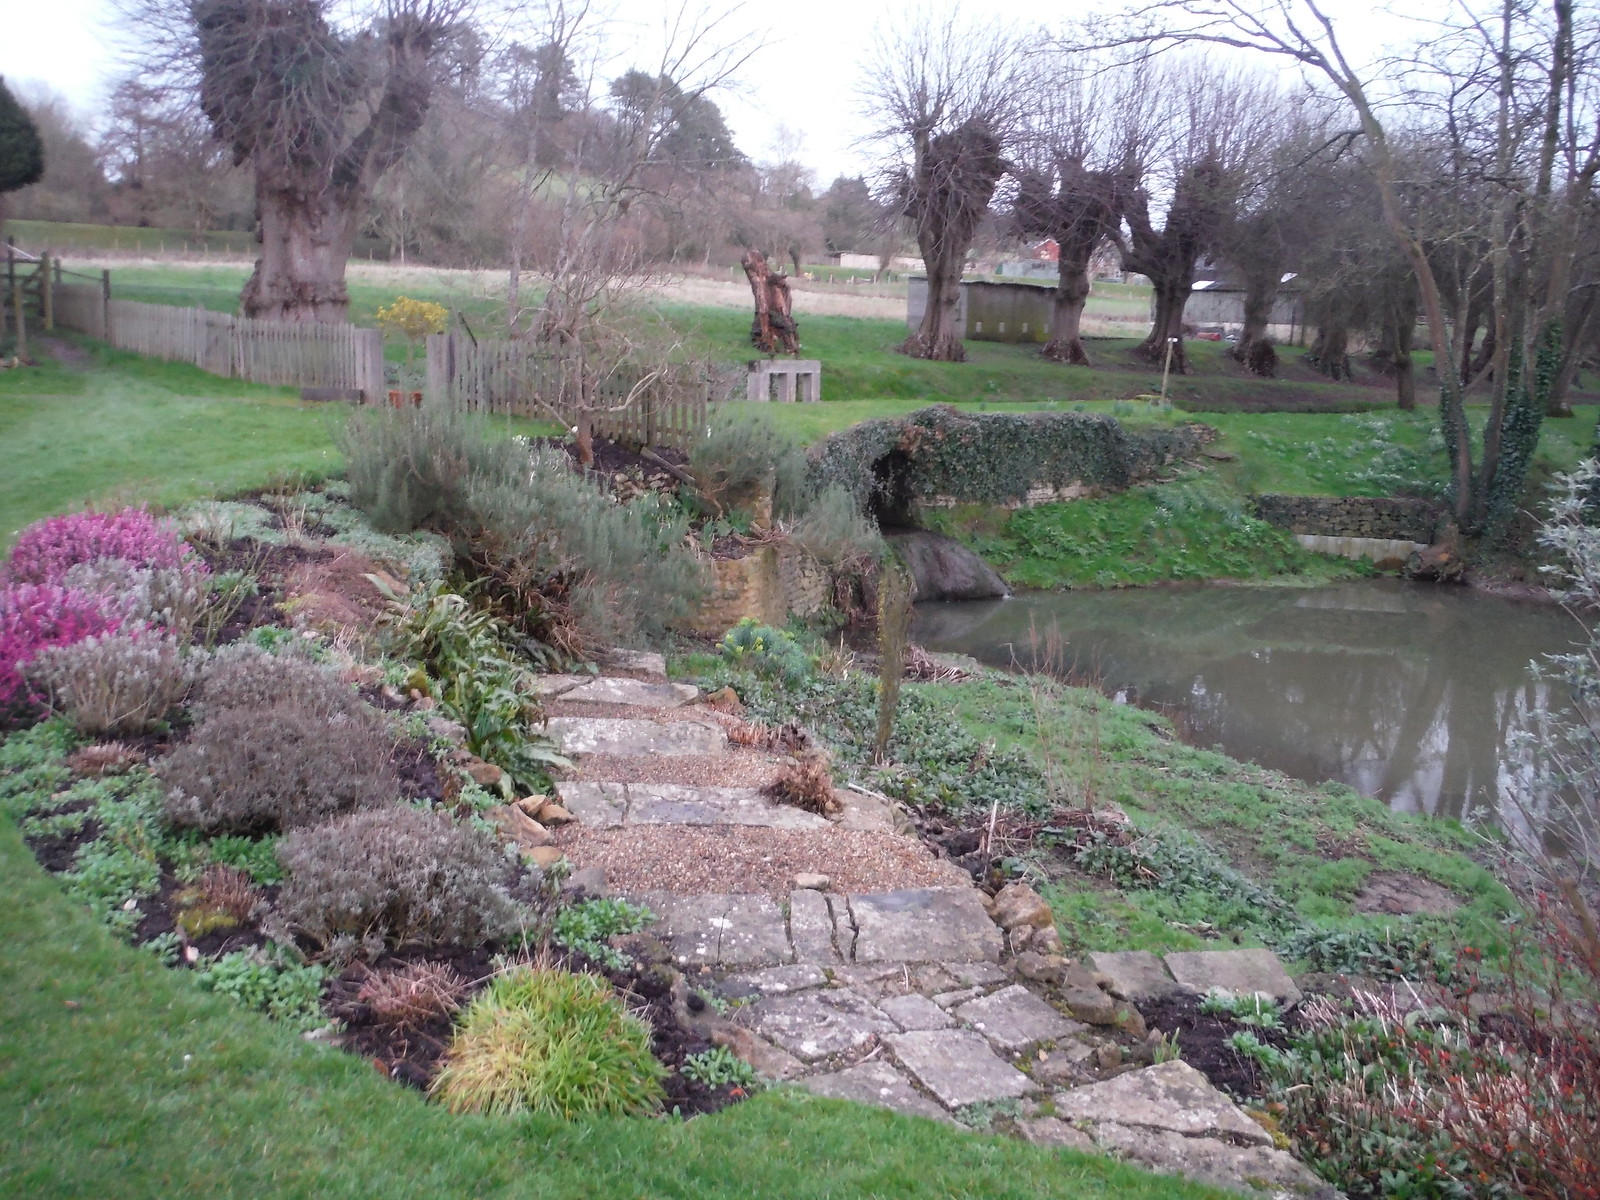 Ornamental Pond, Cole Manor Tea Rooms SWC Walk 284 Bruton Circular (via Hauser & Wirth Somerset) or from Castle Cary